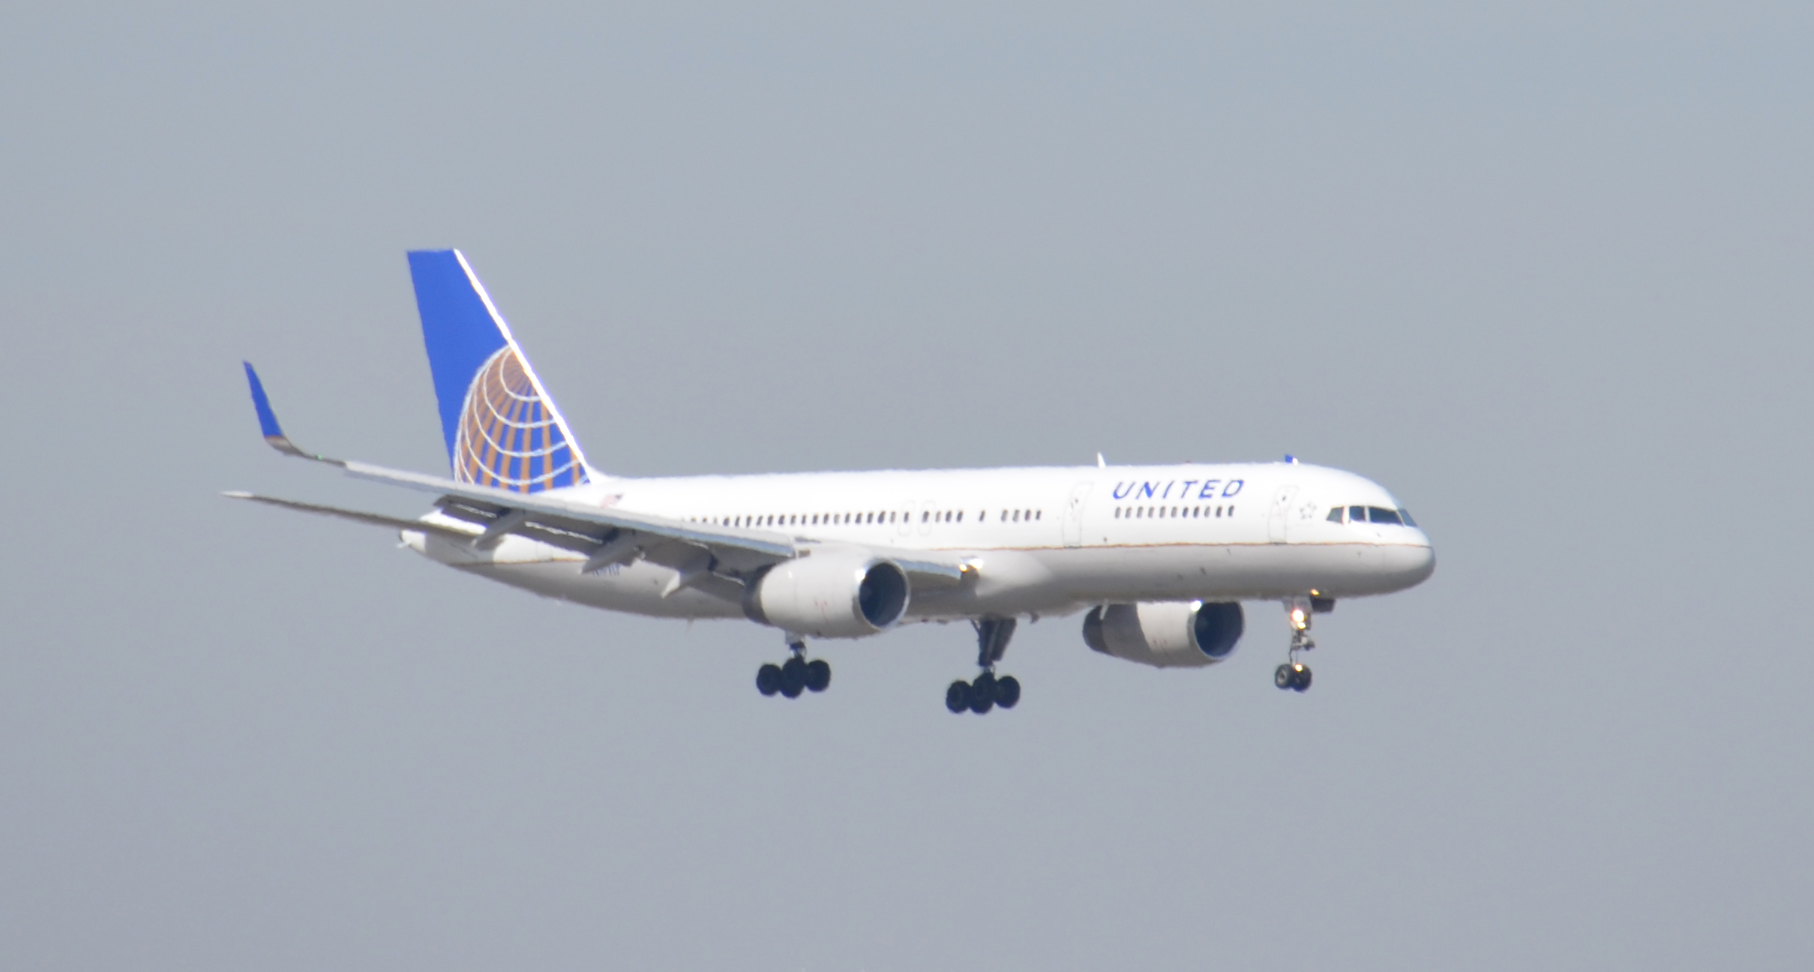 United Launches Annual Subscriptions For Economy Plus